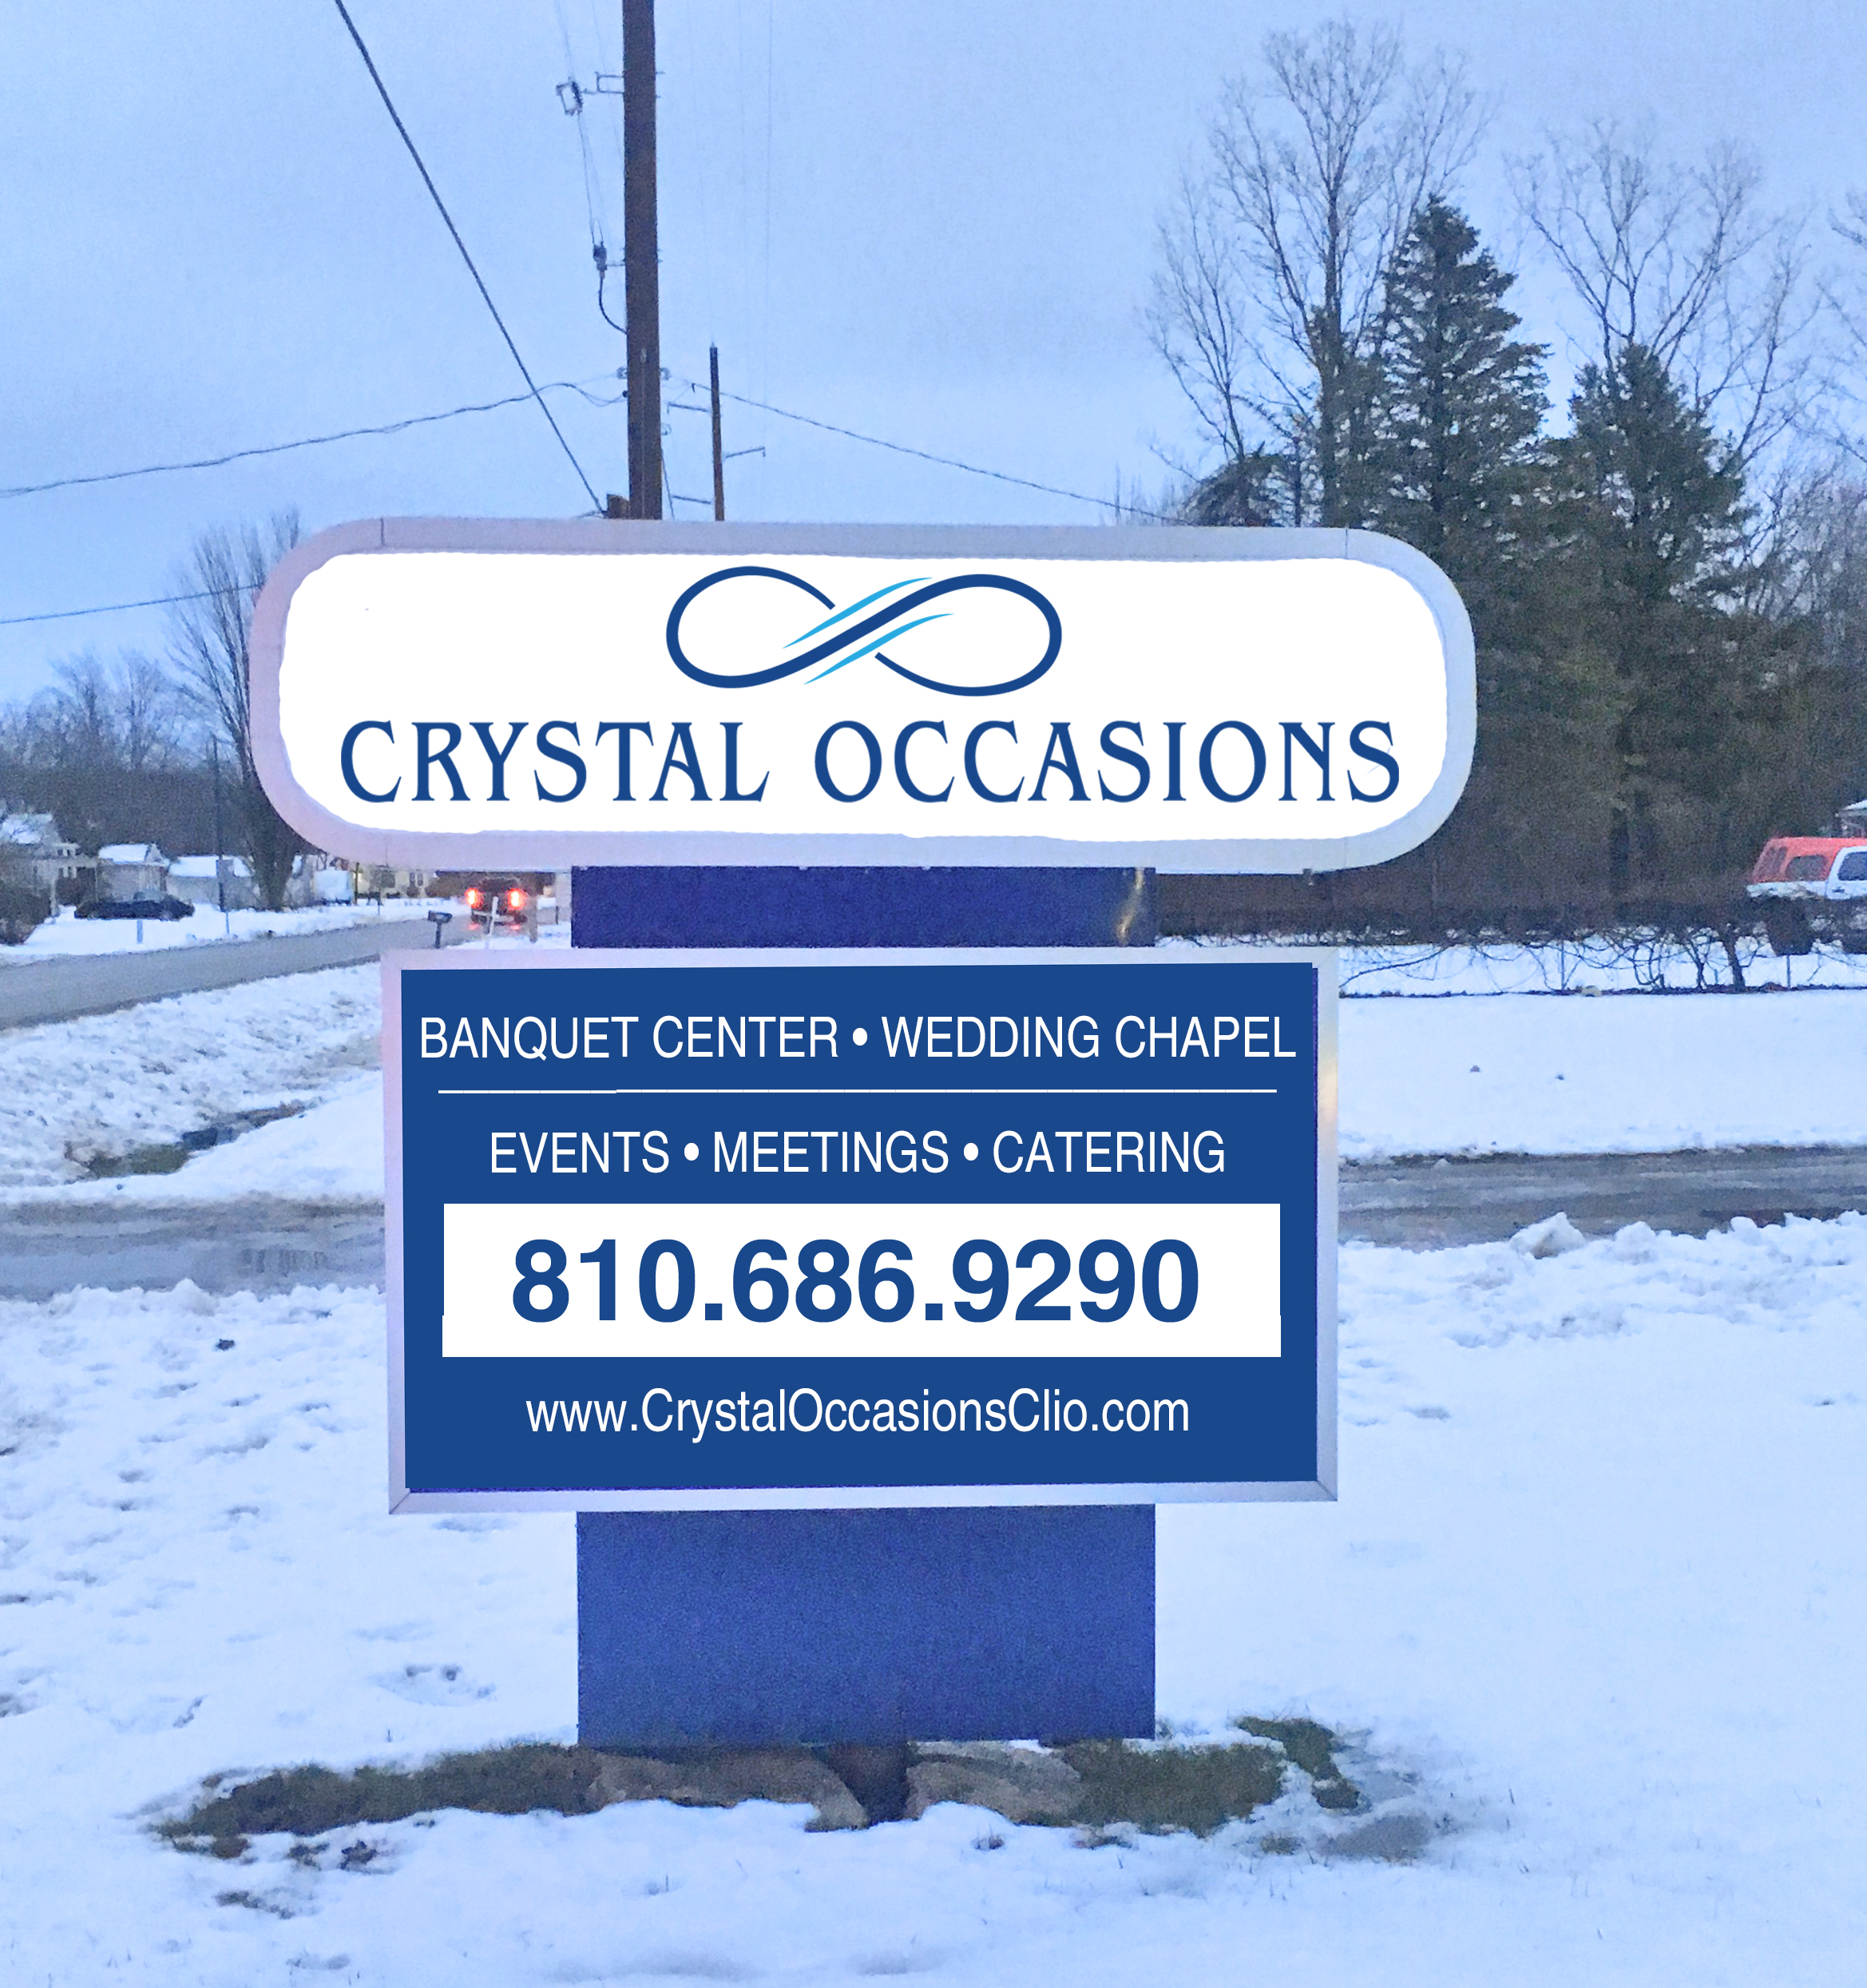 Crystal Occasions Banquet Center